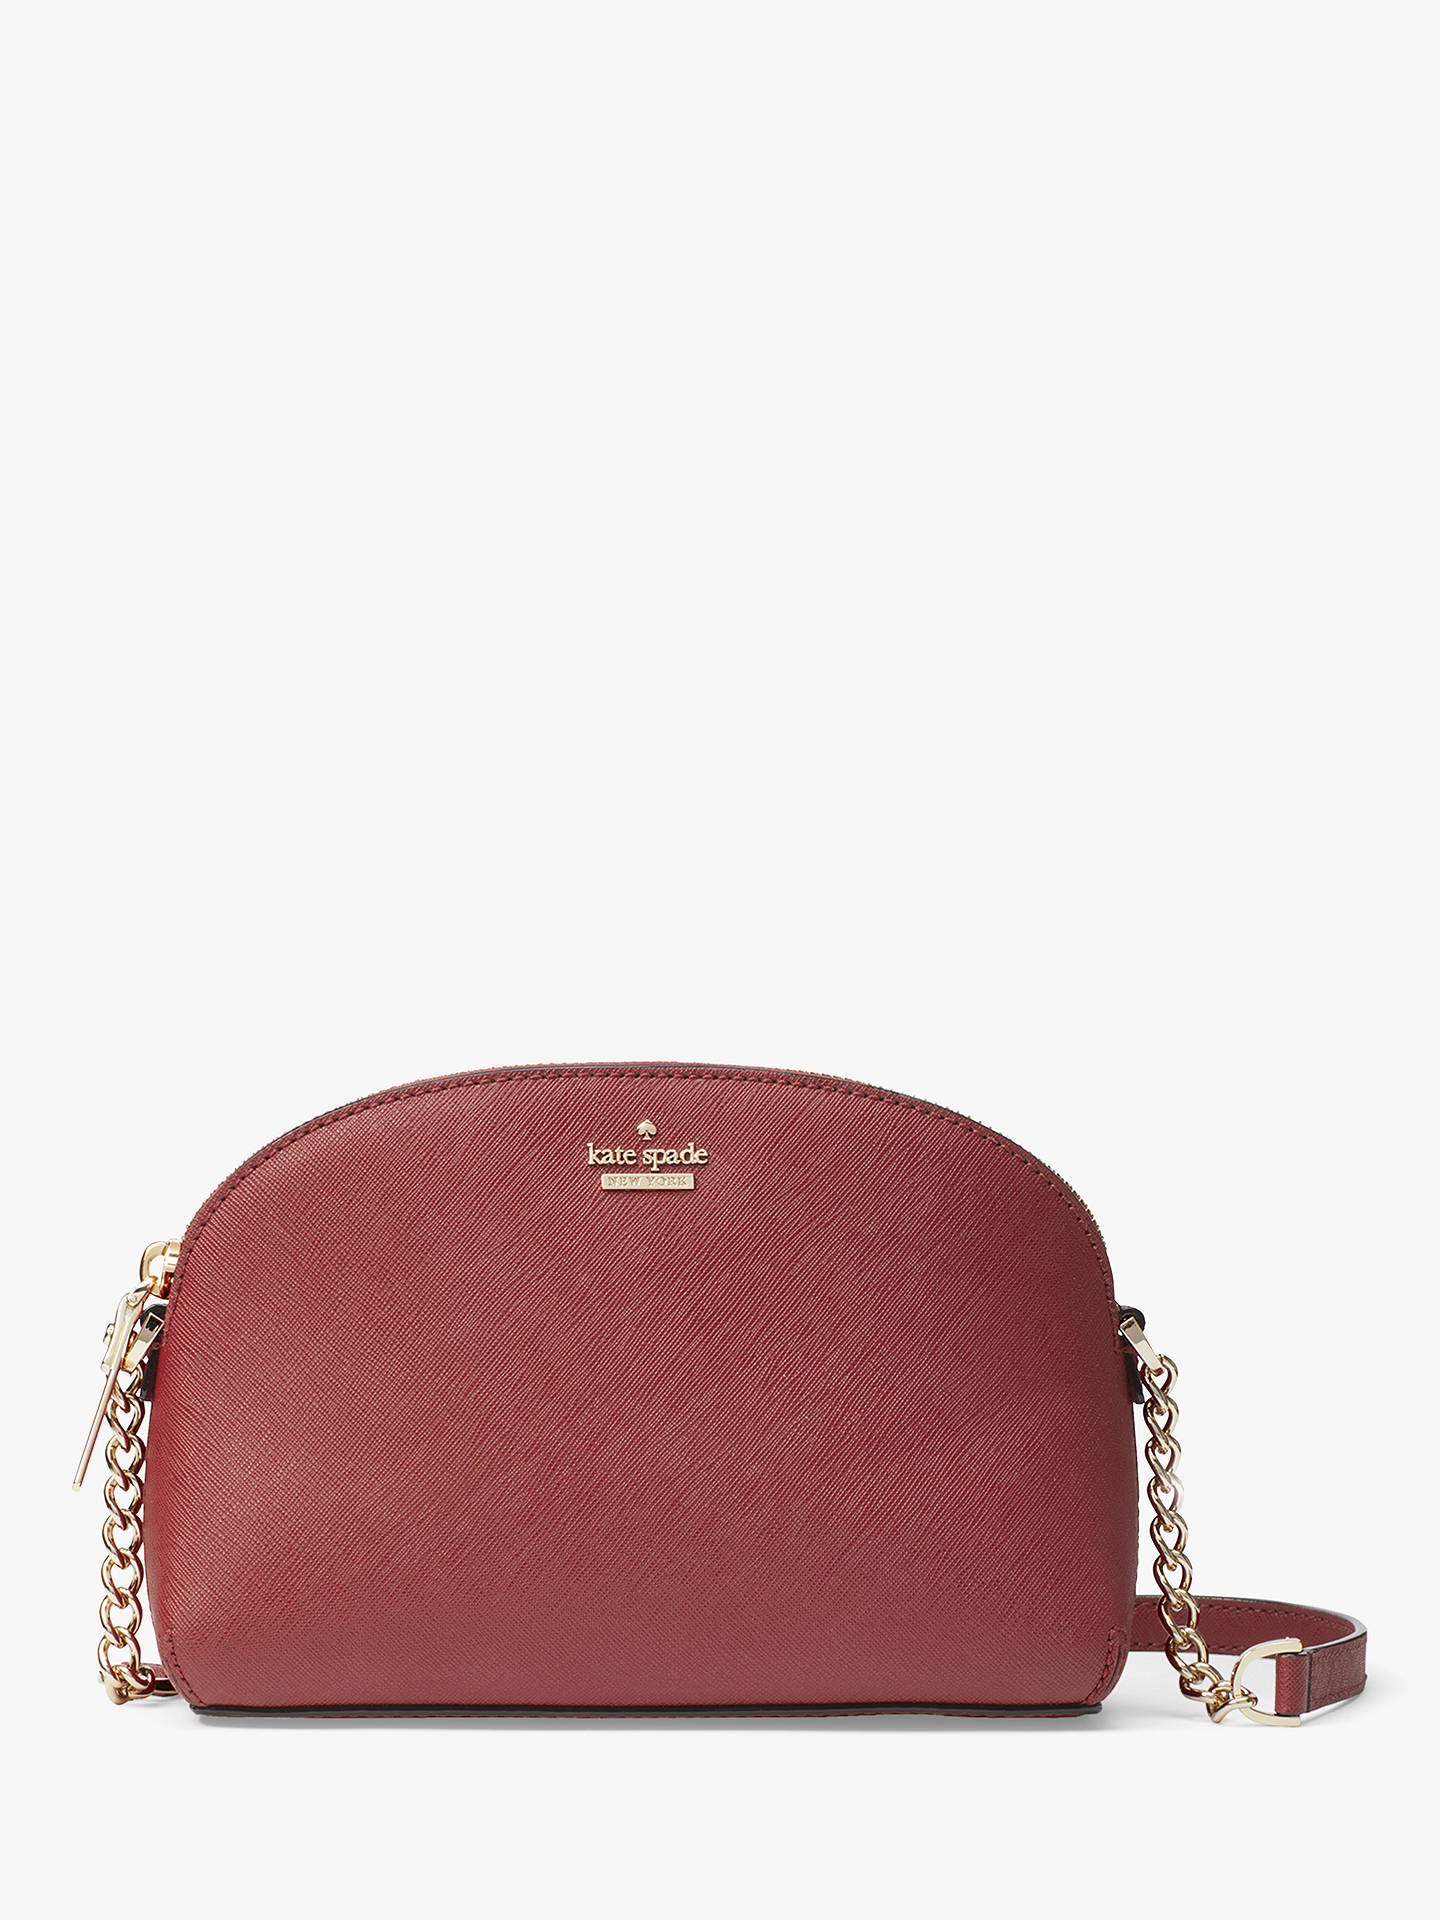 ca7463f03 Buy kate spade new york Cameron Street Hilli Leather Cross Body Bag, Sienna  Online at ...